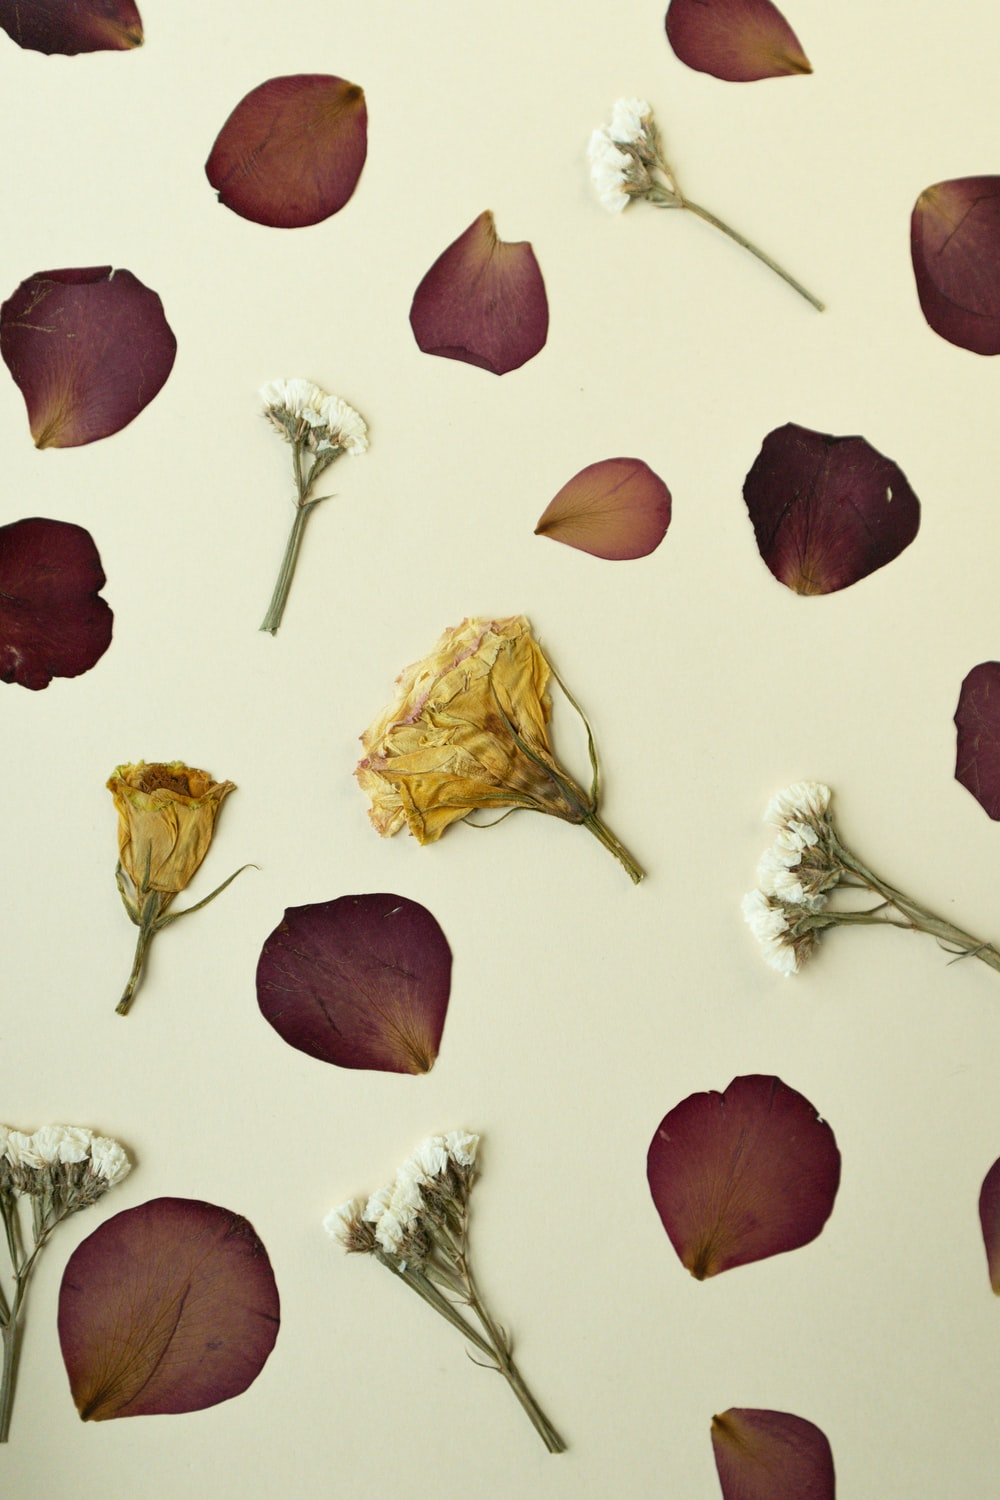 brown and white flower petals